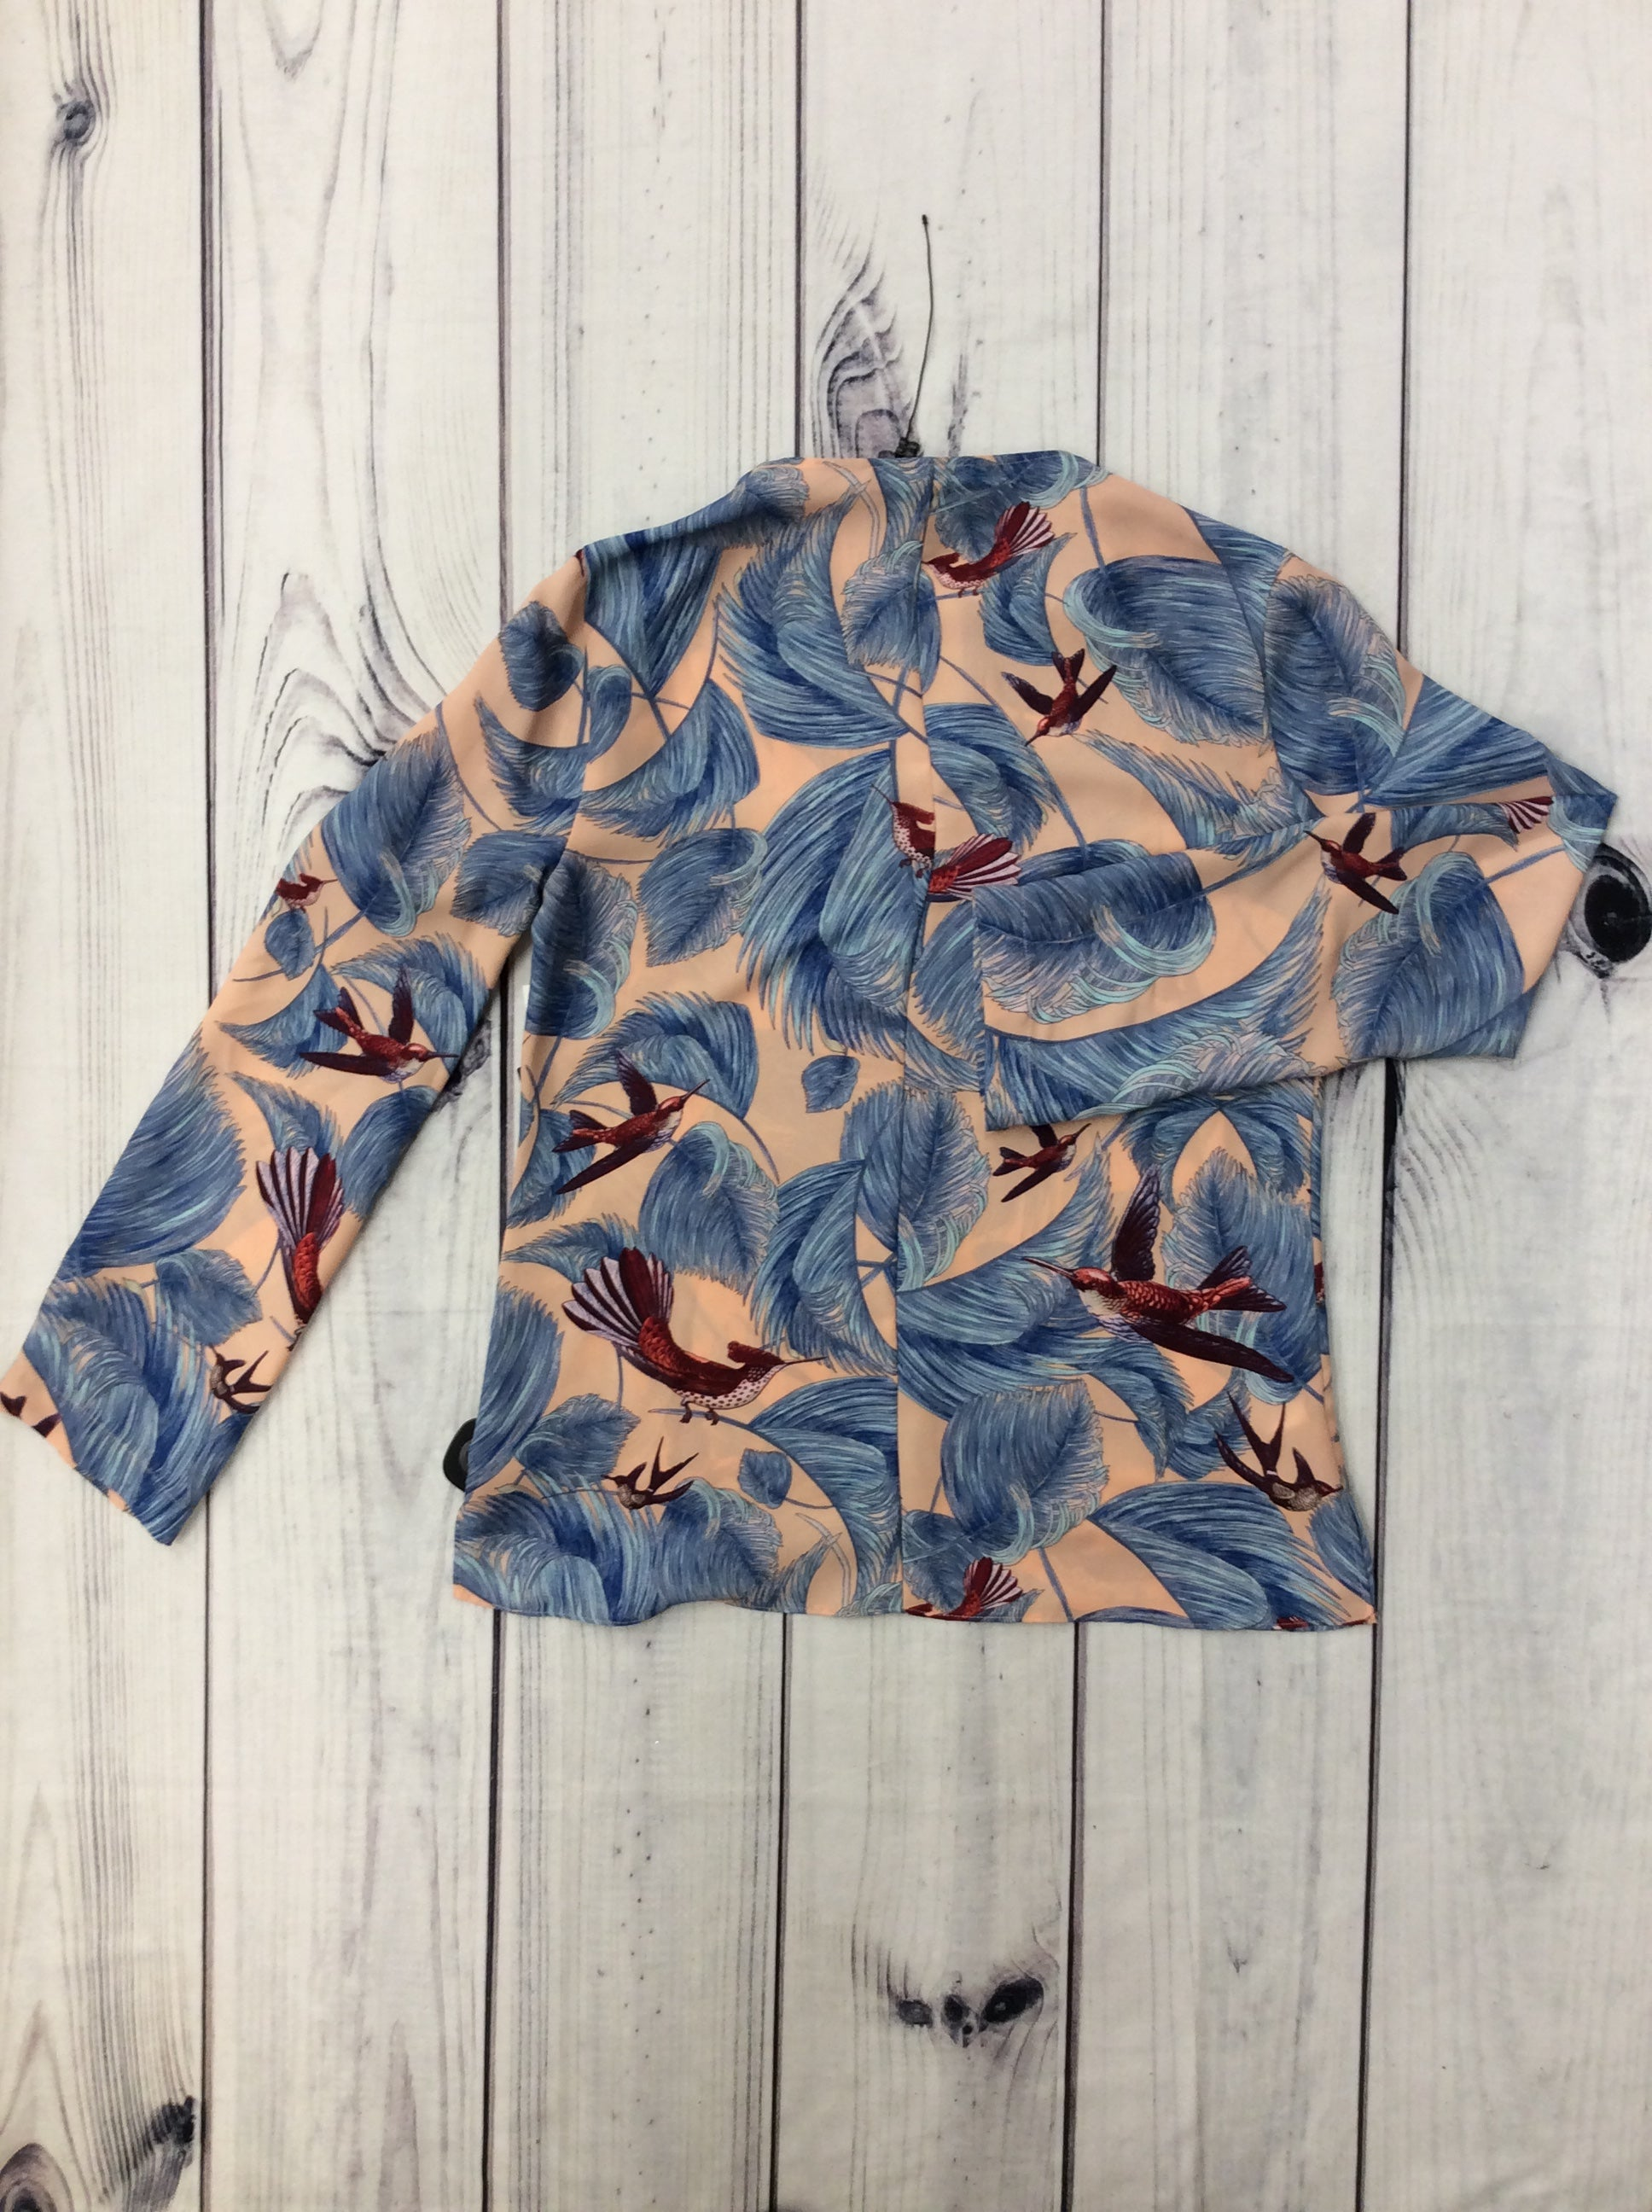 NWT BCBGMaxazria Blouse - <UL> <LI>SIZE XXS</LI> <LI>V-NECK</LI> <LI>BIRDS AND FEATHERS BLOUSE</LI> </UL>